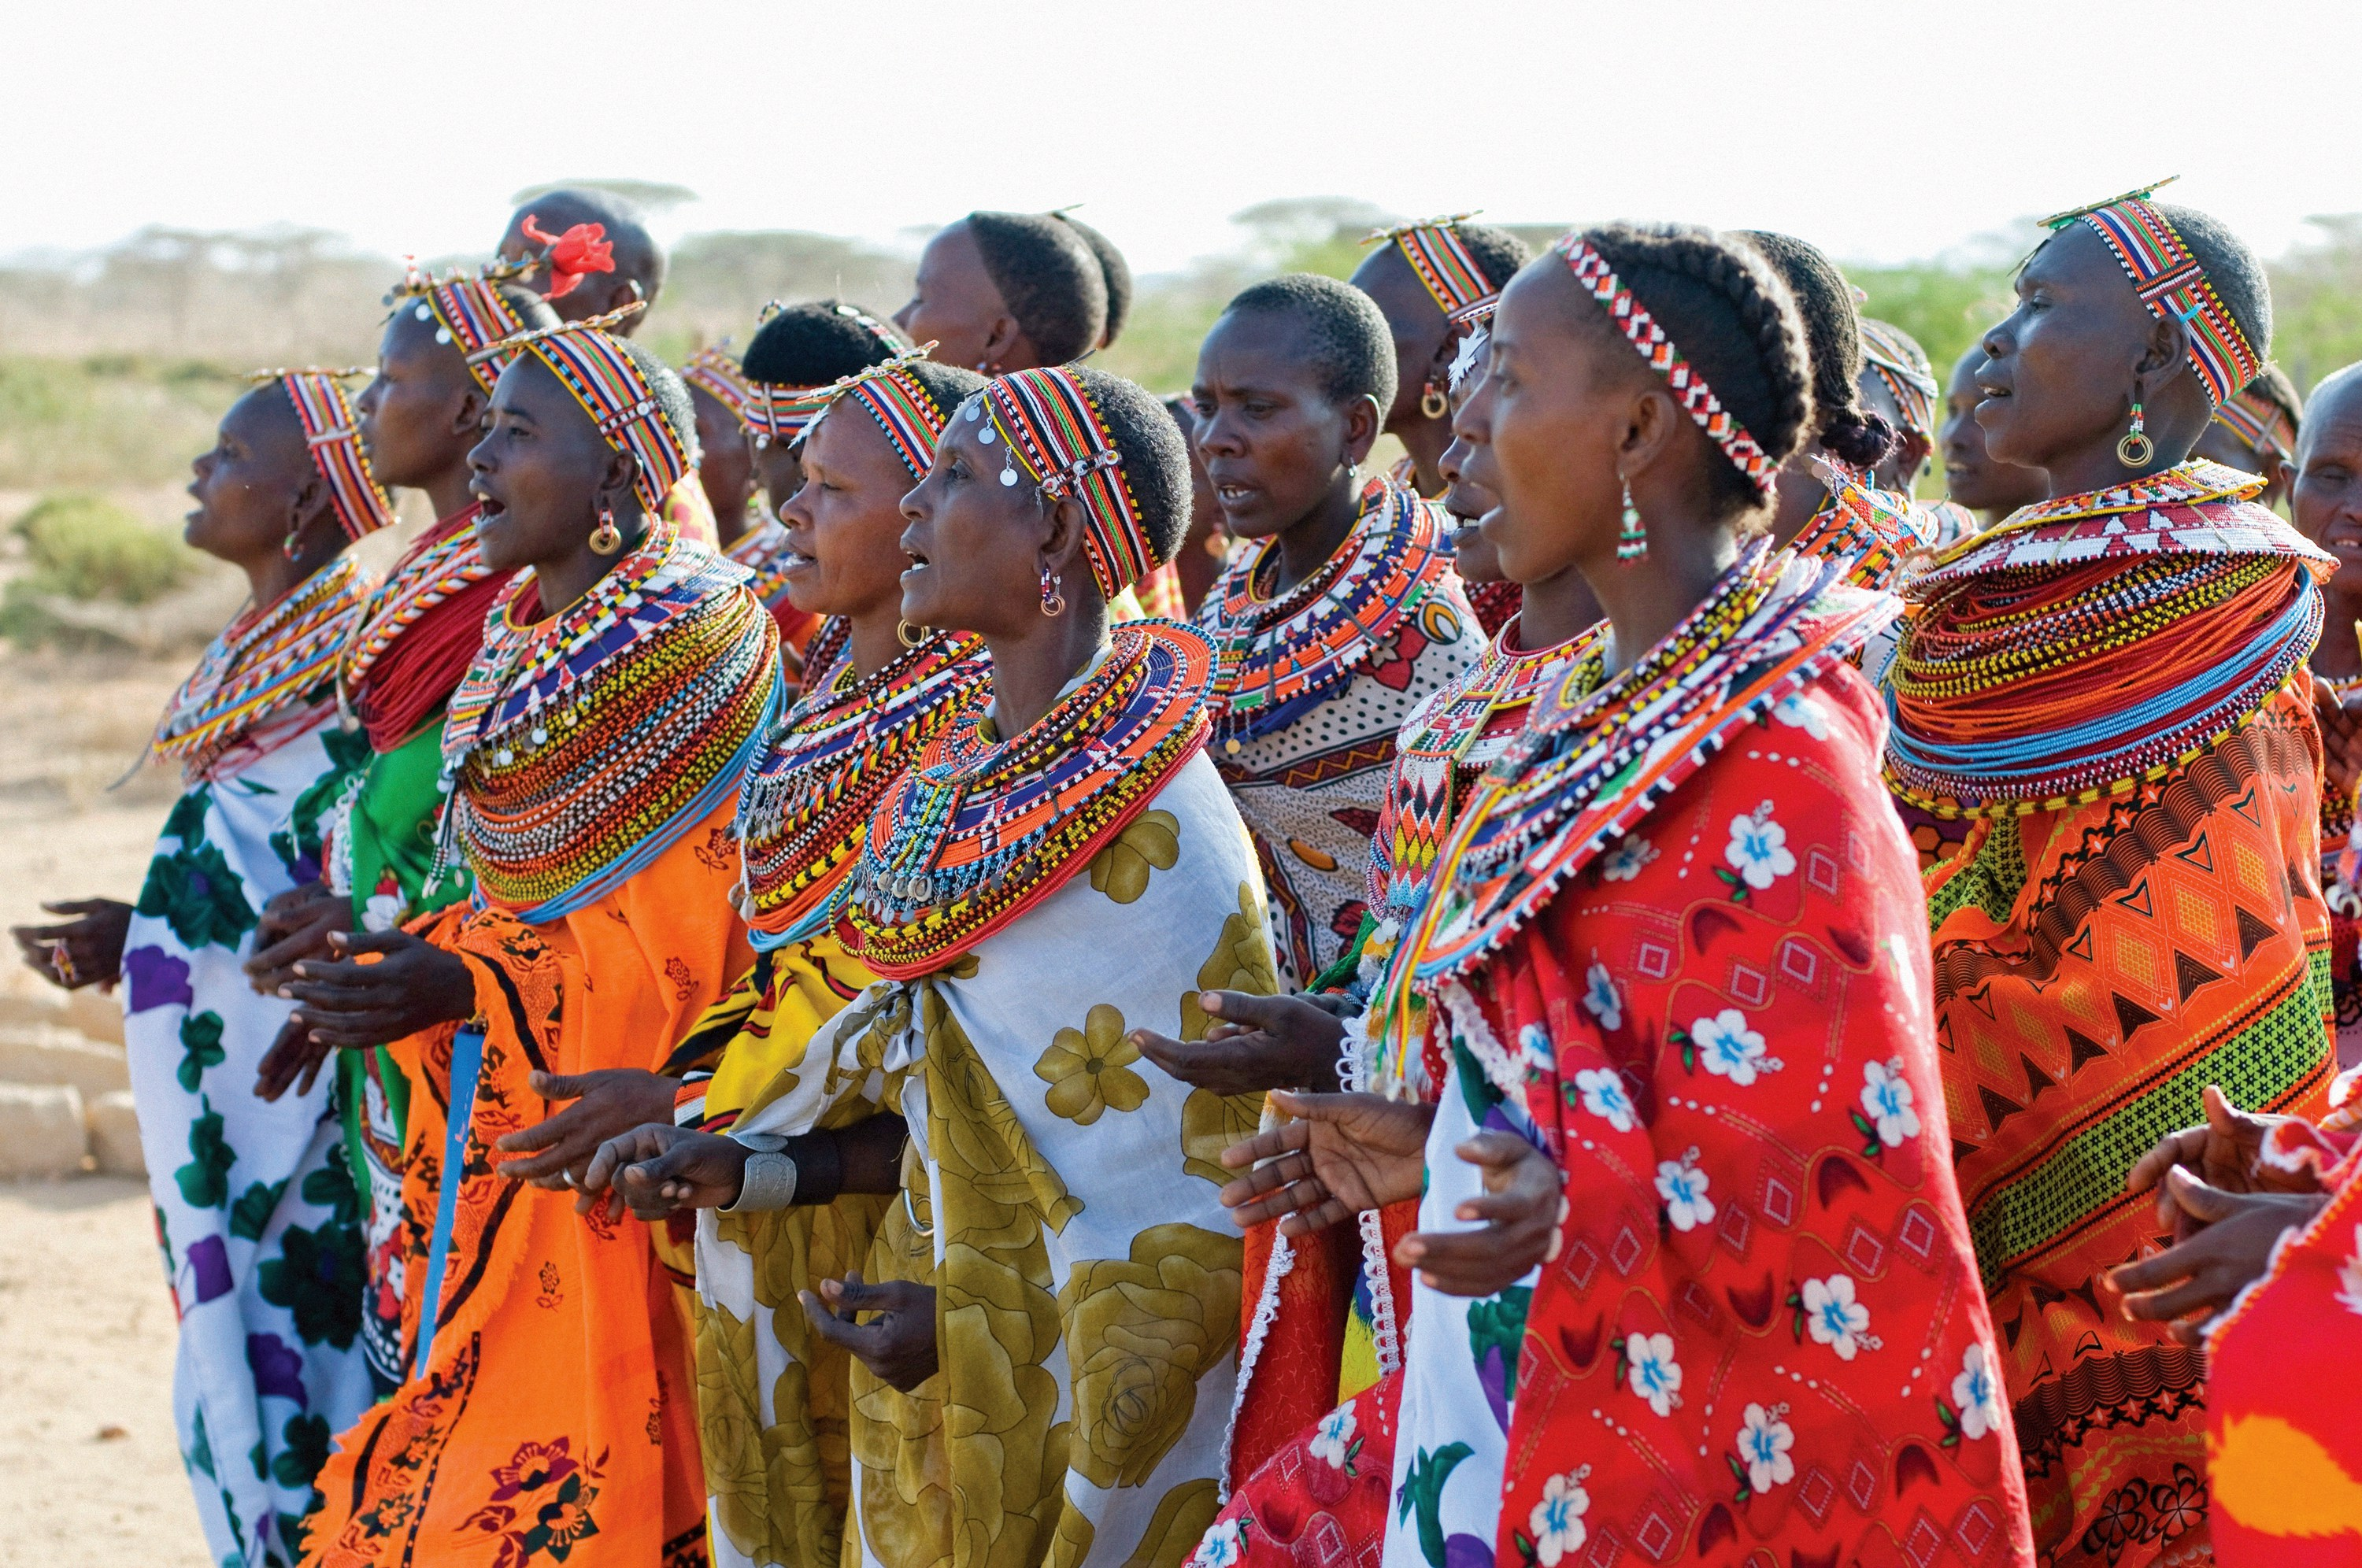 KENYA CLOTHING_WHAT GARMENTS DO KENYANS WOMEN WEAR? THEIR NATIONAL DRESS 1